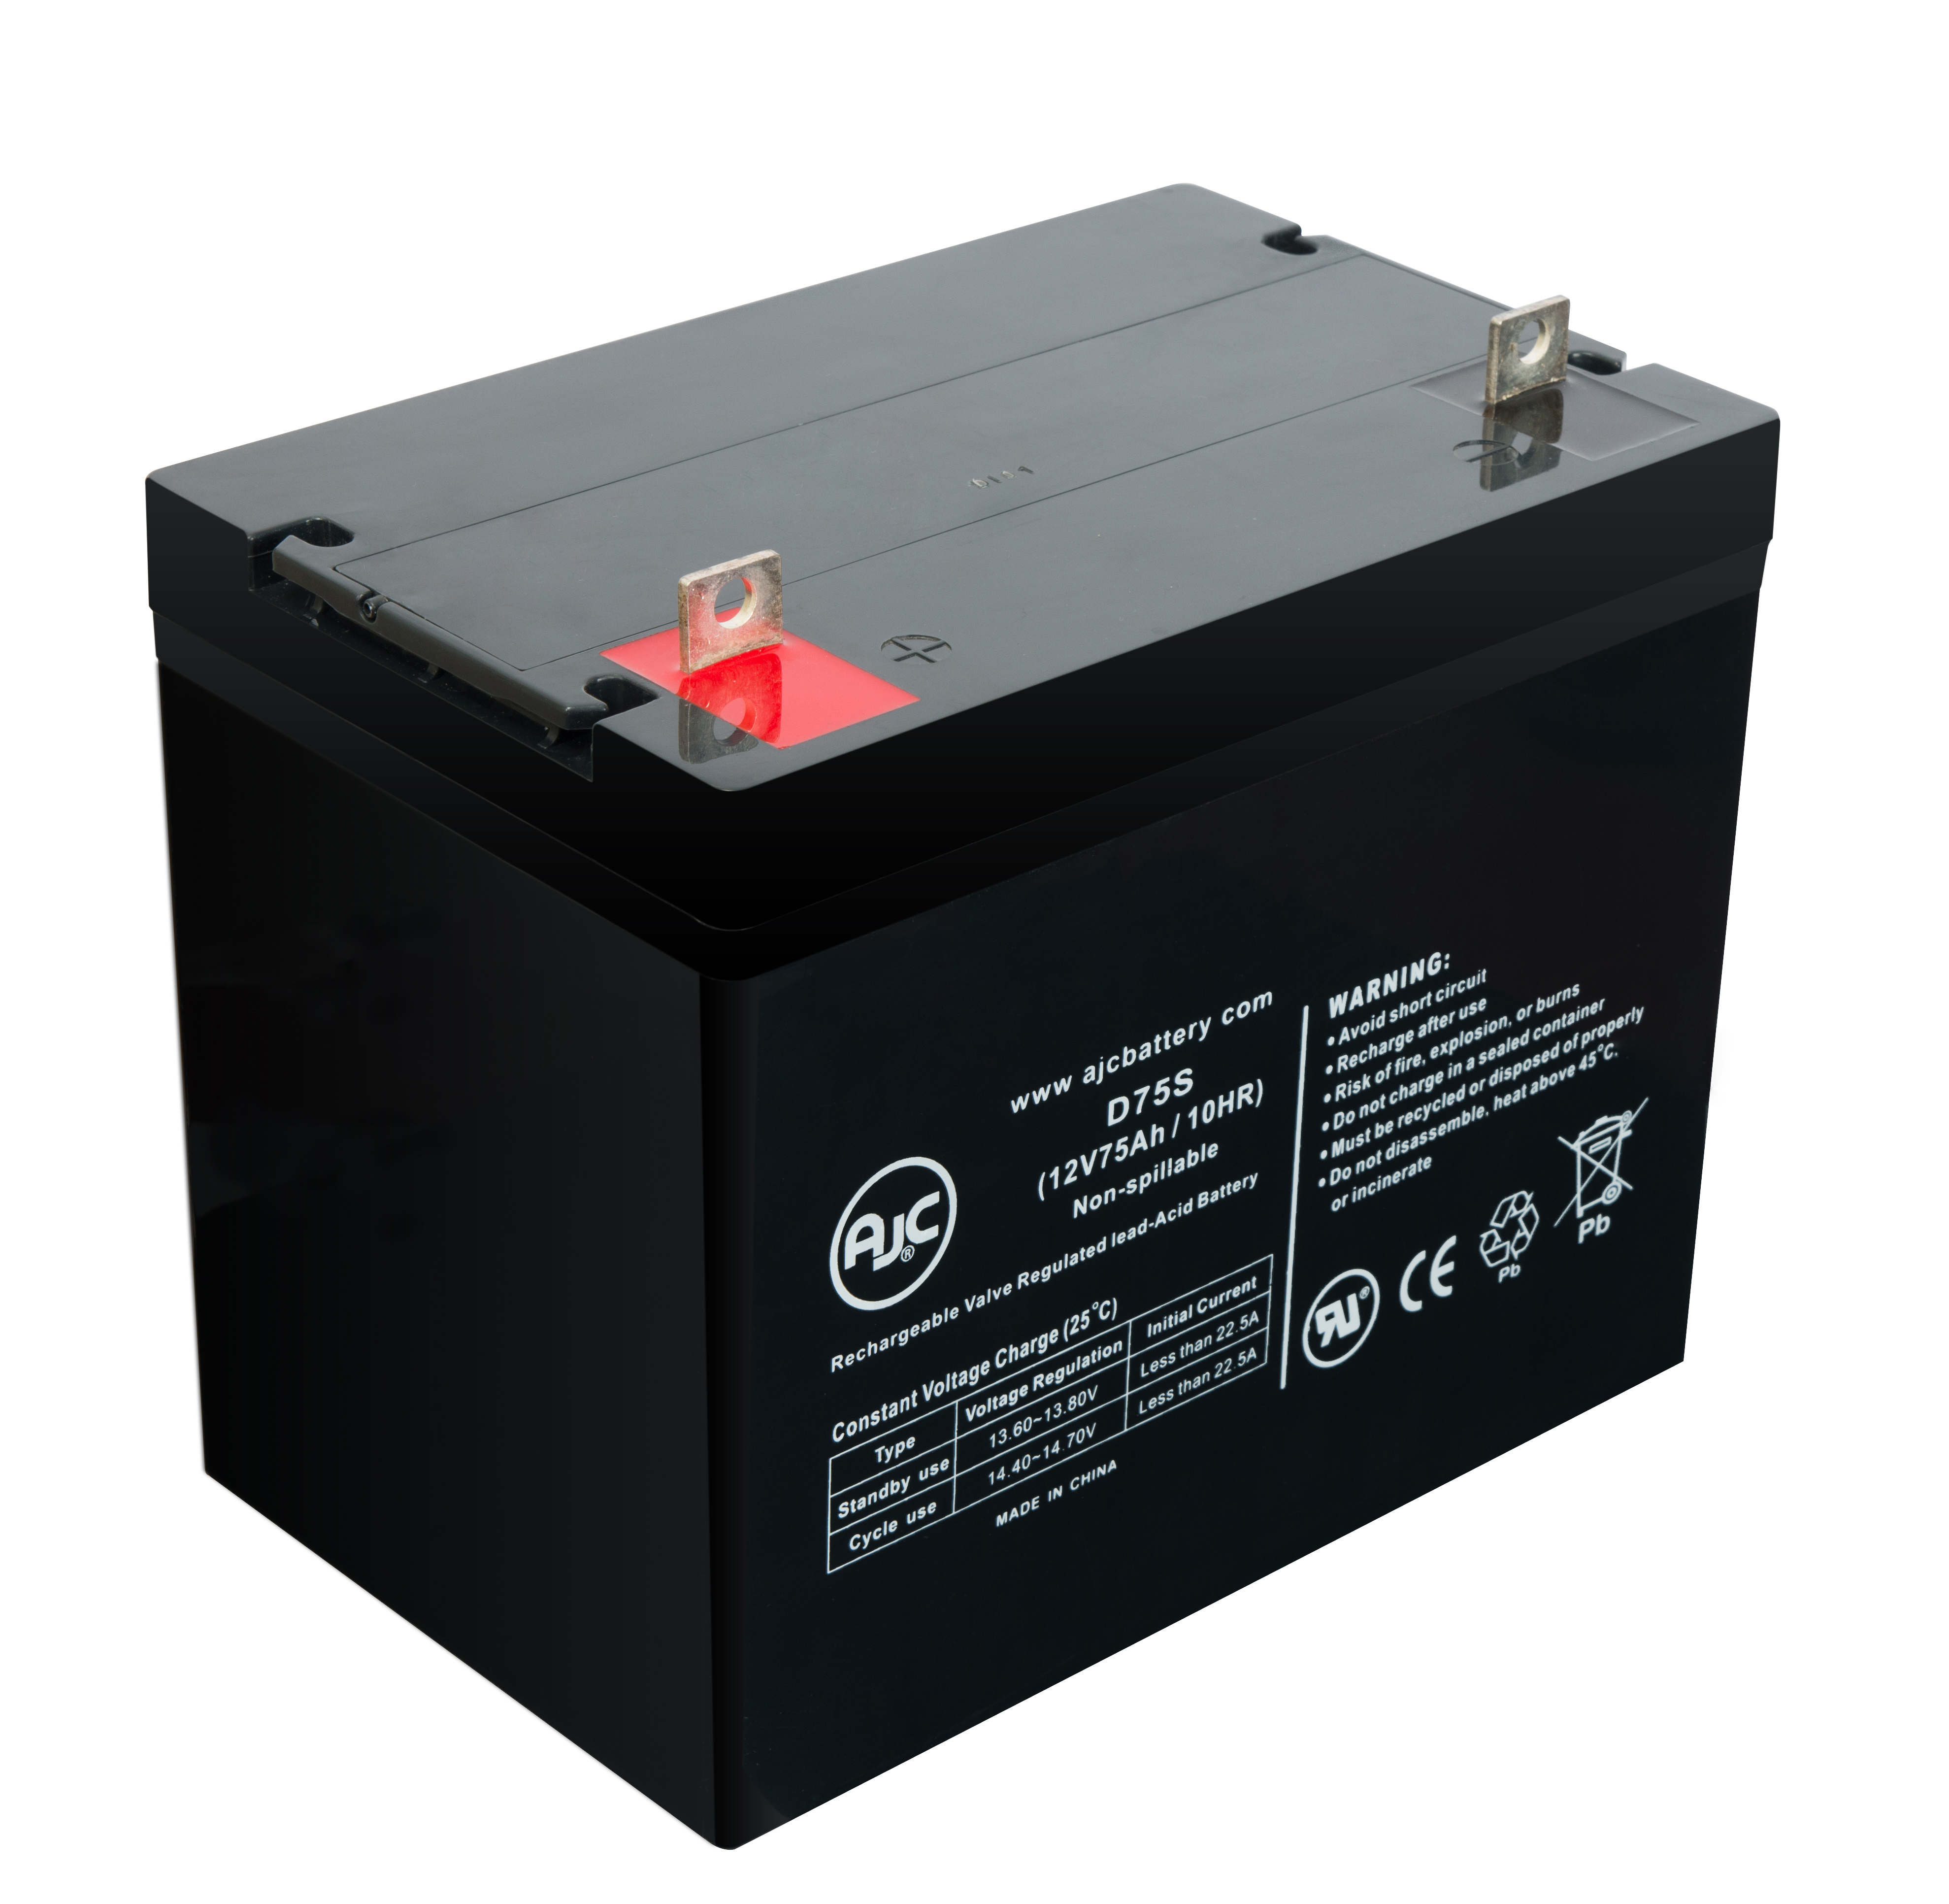 Revolution Mobility Commander Extra Duty Scooter 12V 75Ah Battery - This is an AJC Brand® Replacement